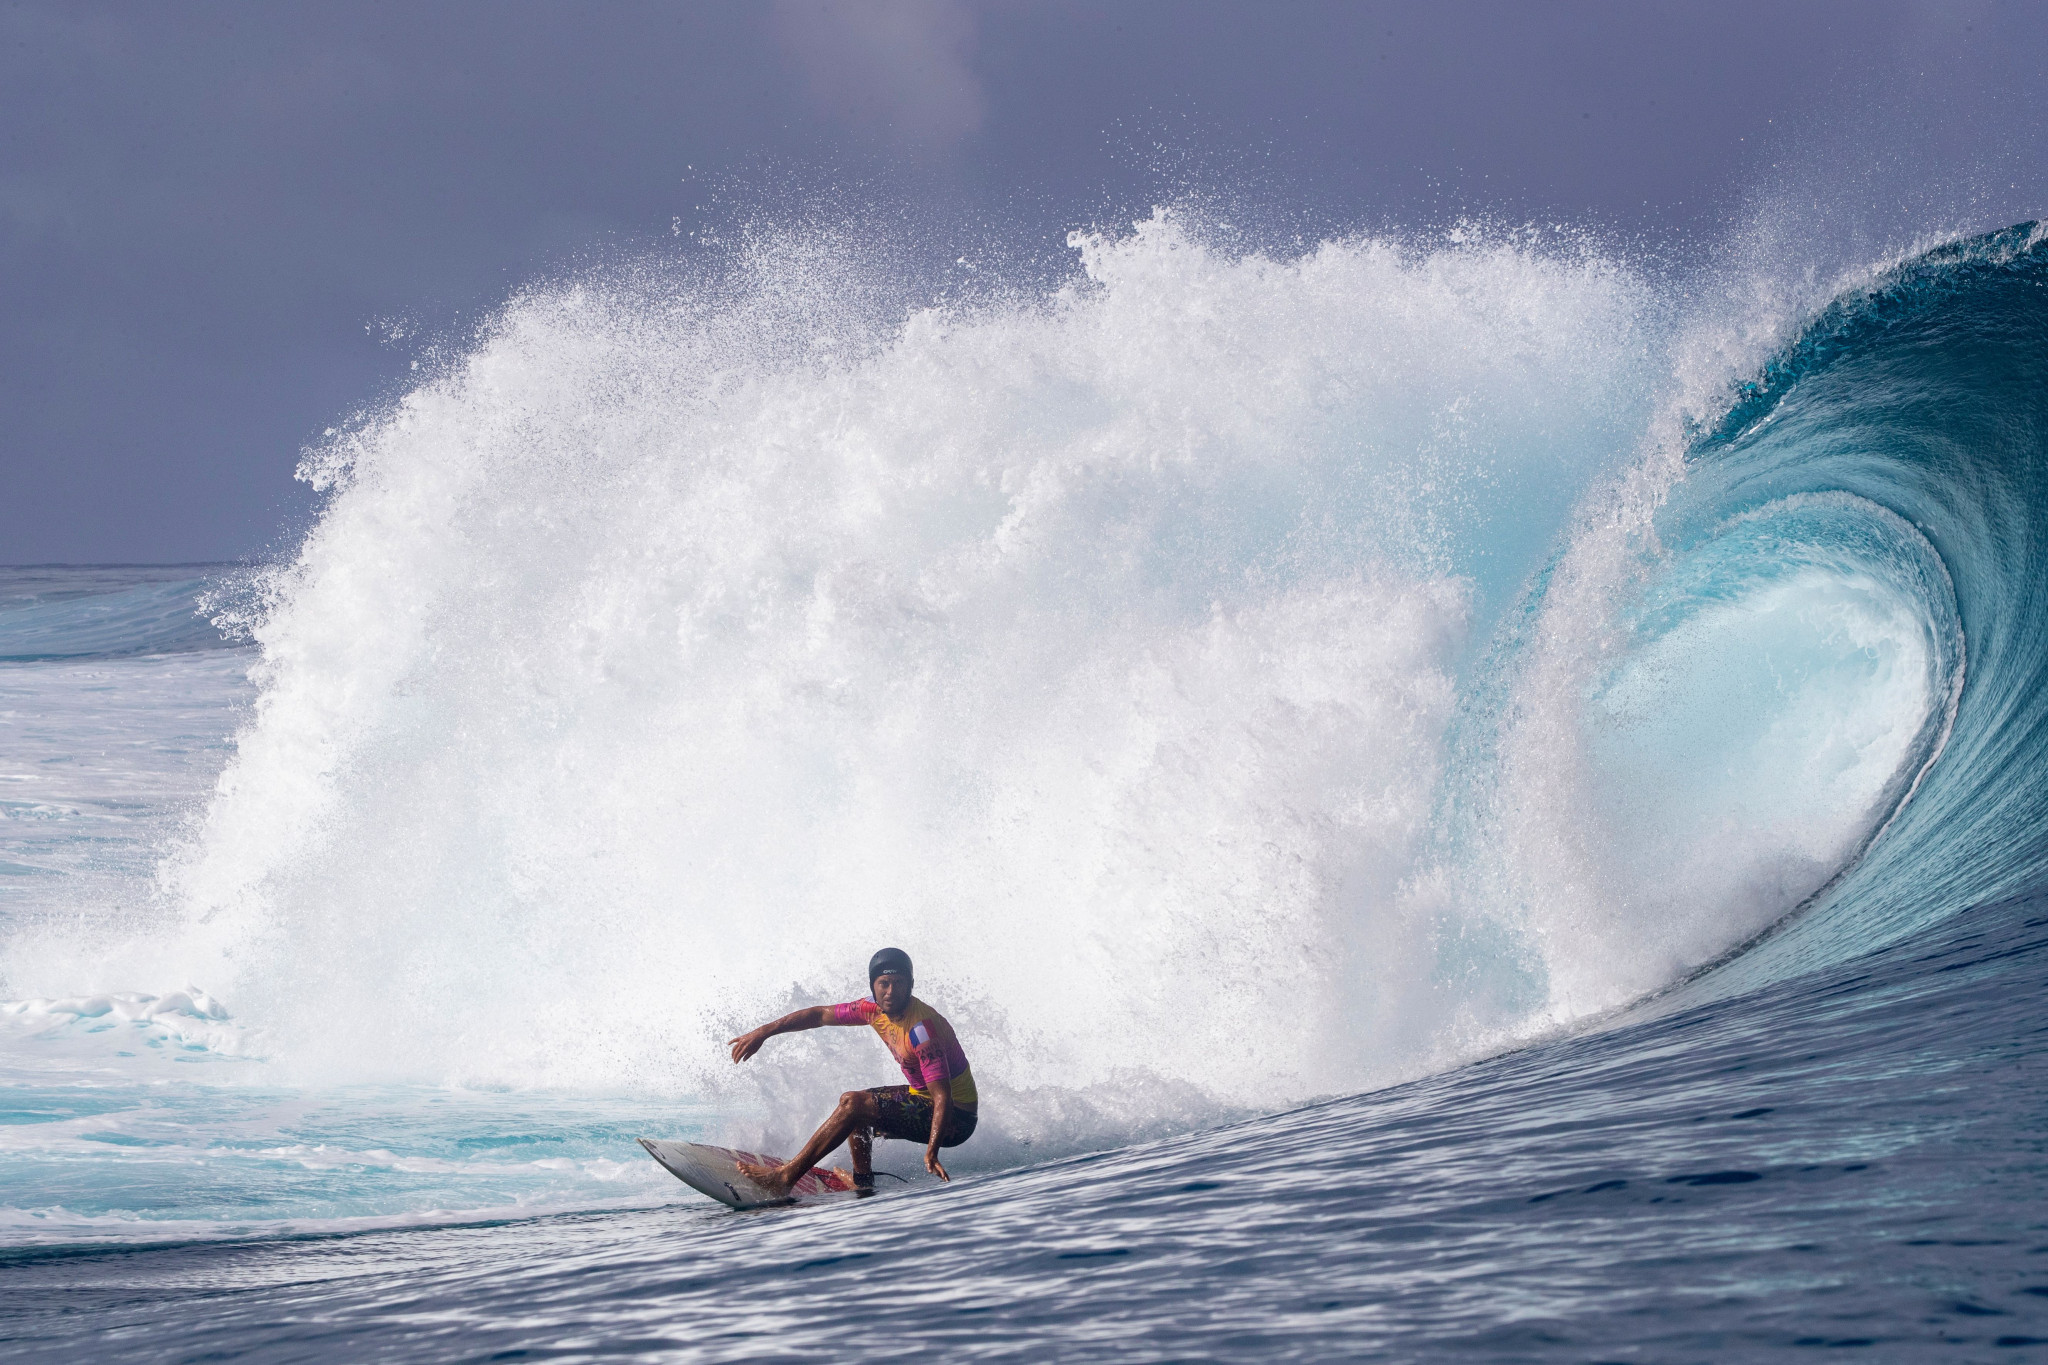 ISA award 43 scholarships to young underprivileged surfers